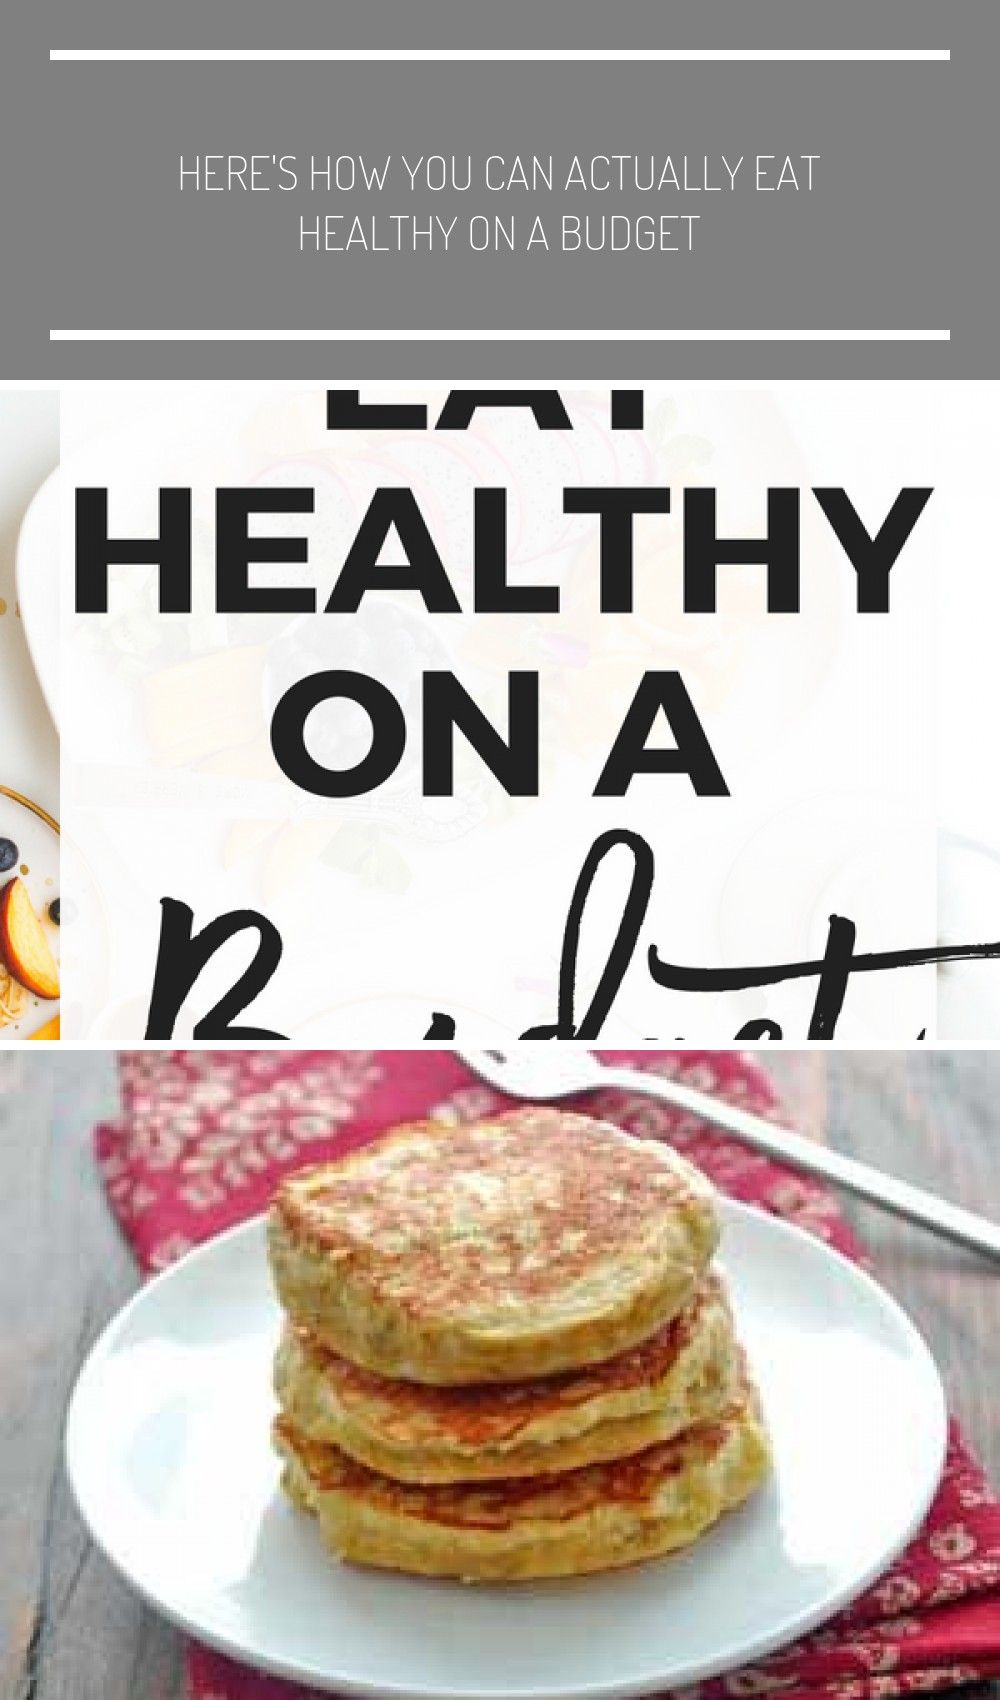 How to Eat Healthy on a Budget | Eating healthy can be a challenge, as can eating on a budget. Unfor...